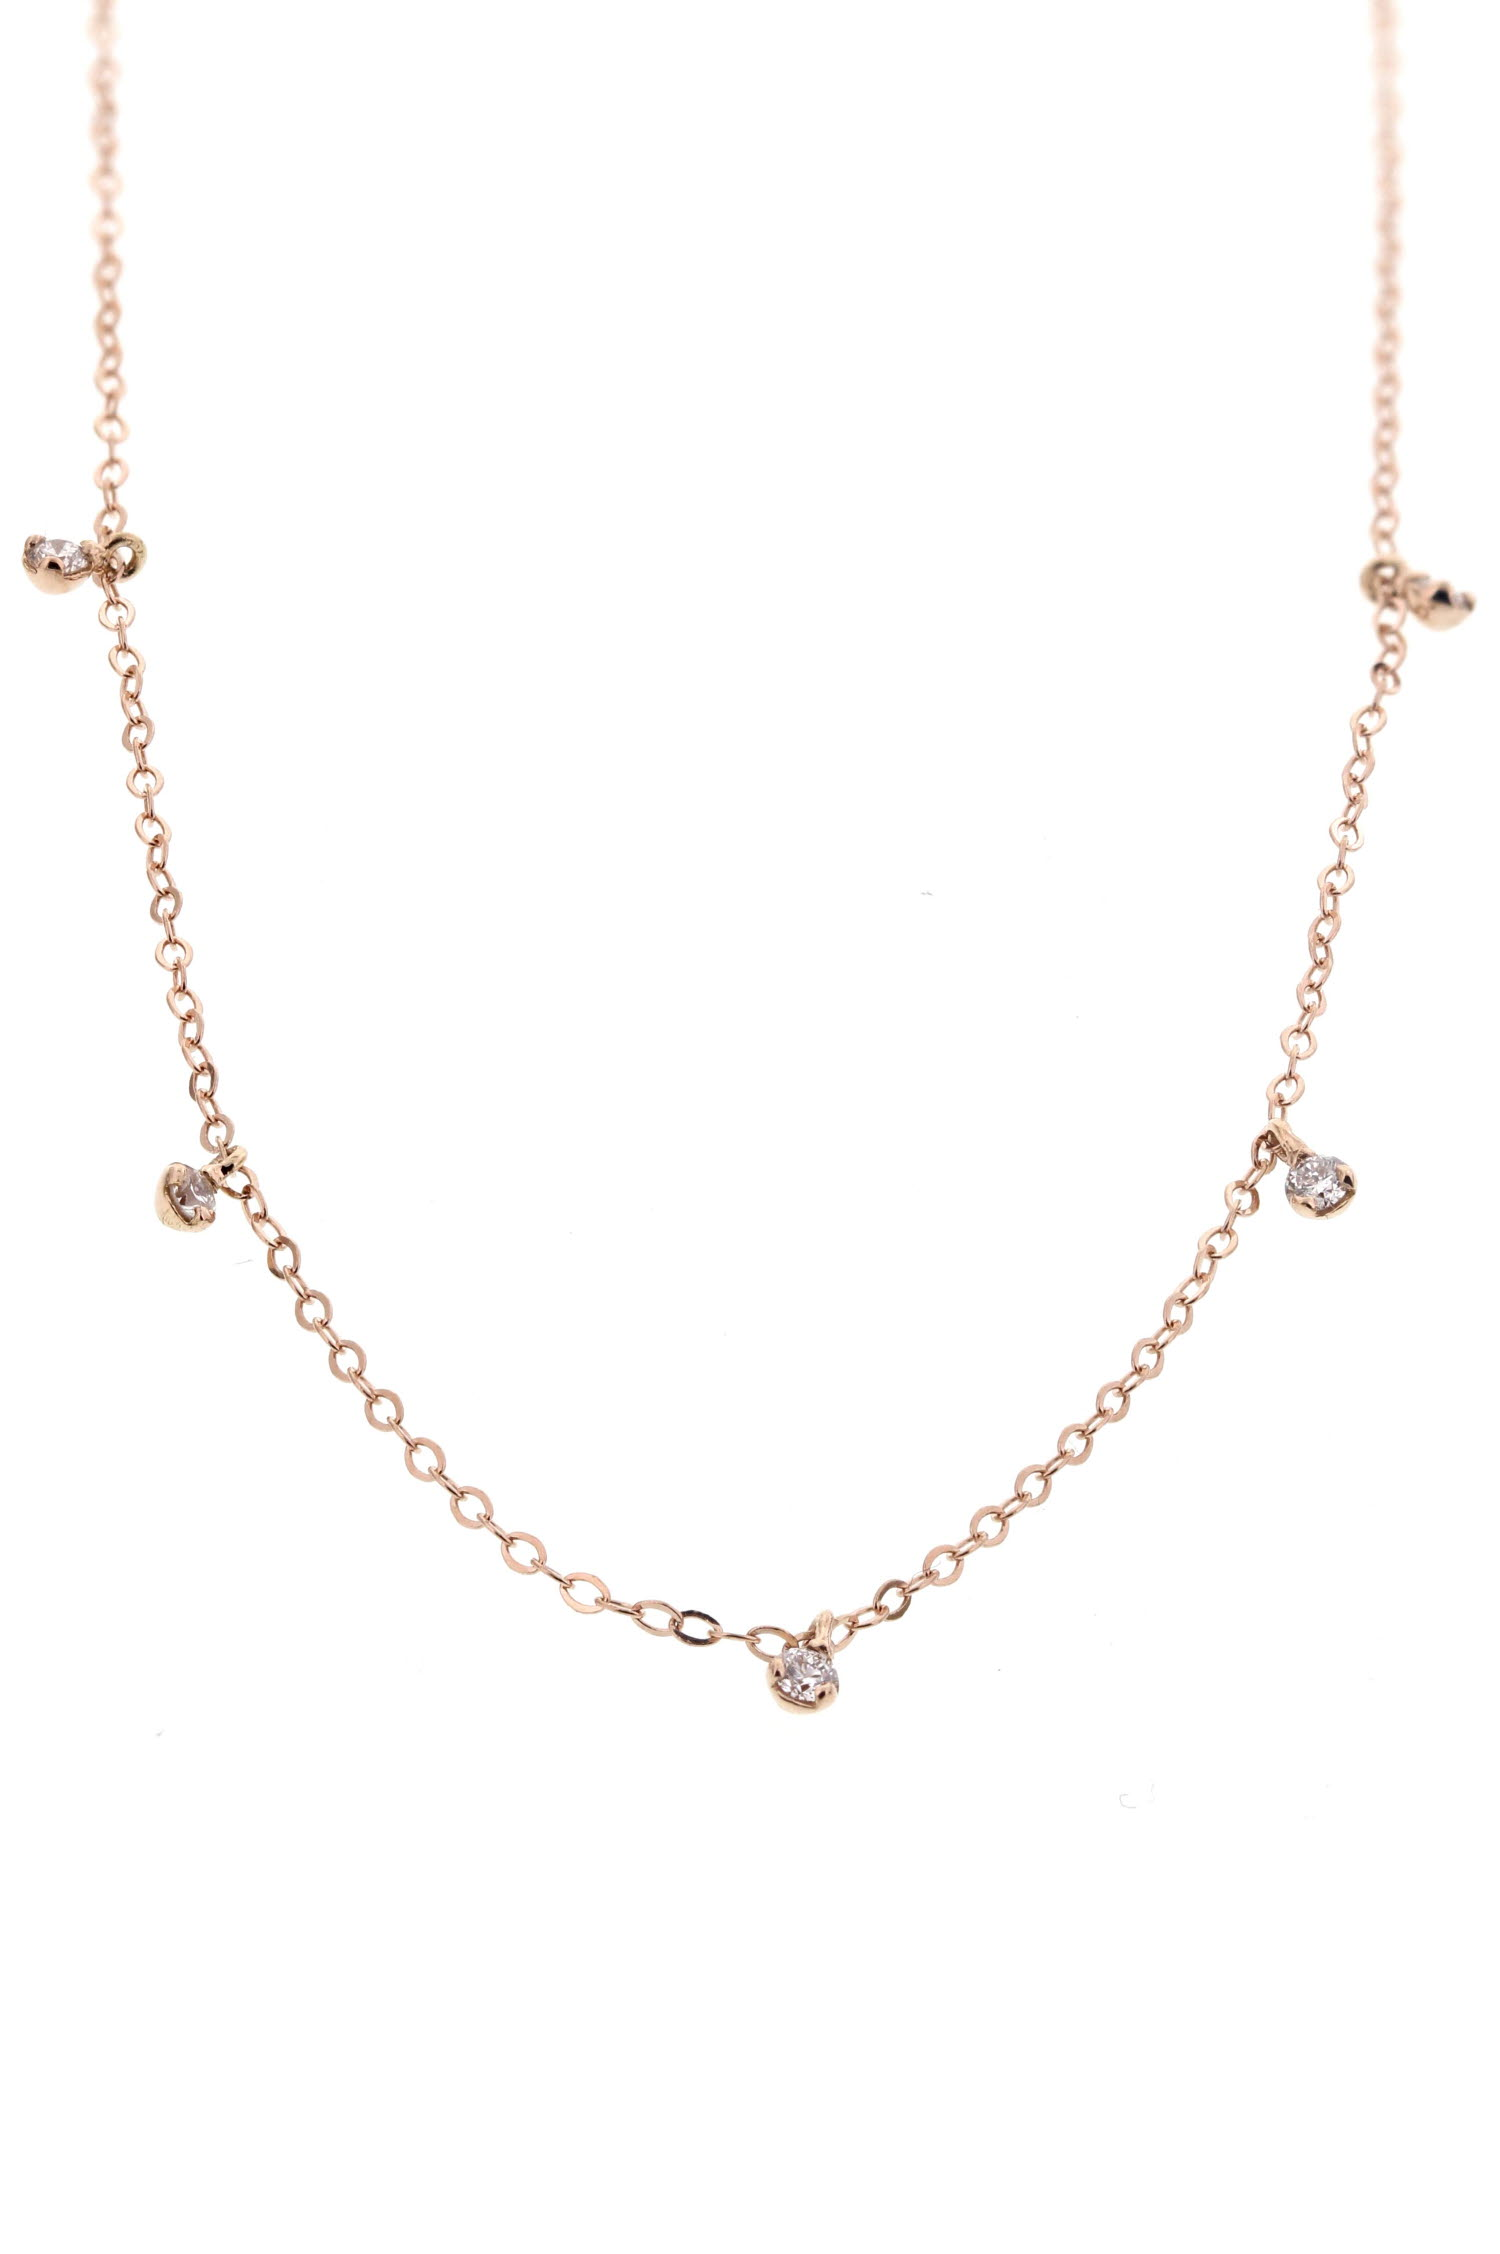 Fabuleux Collier or rose et 5 diamants 42 cm Gigi Clozeau QP03